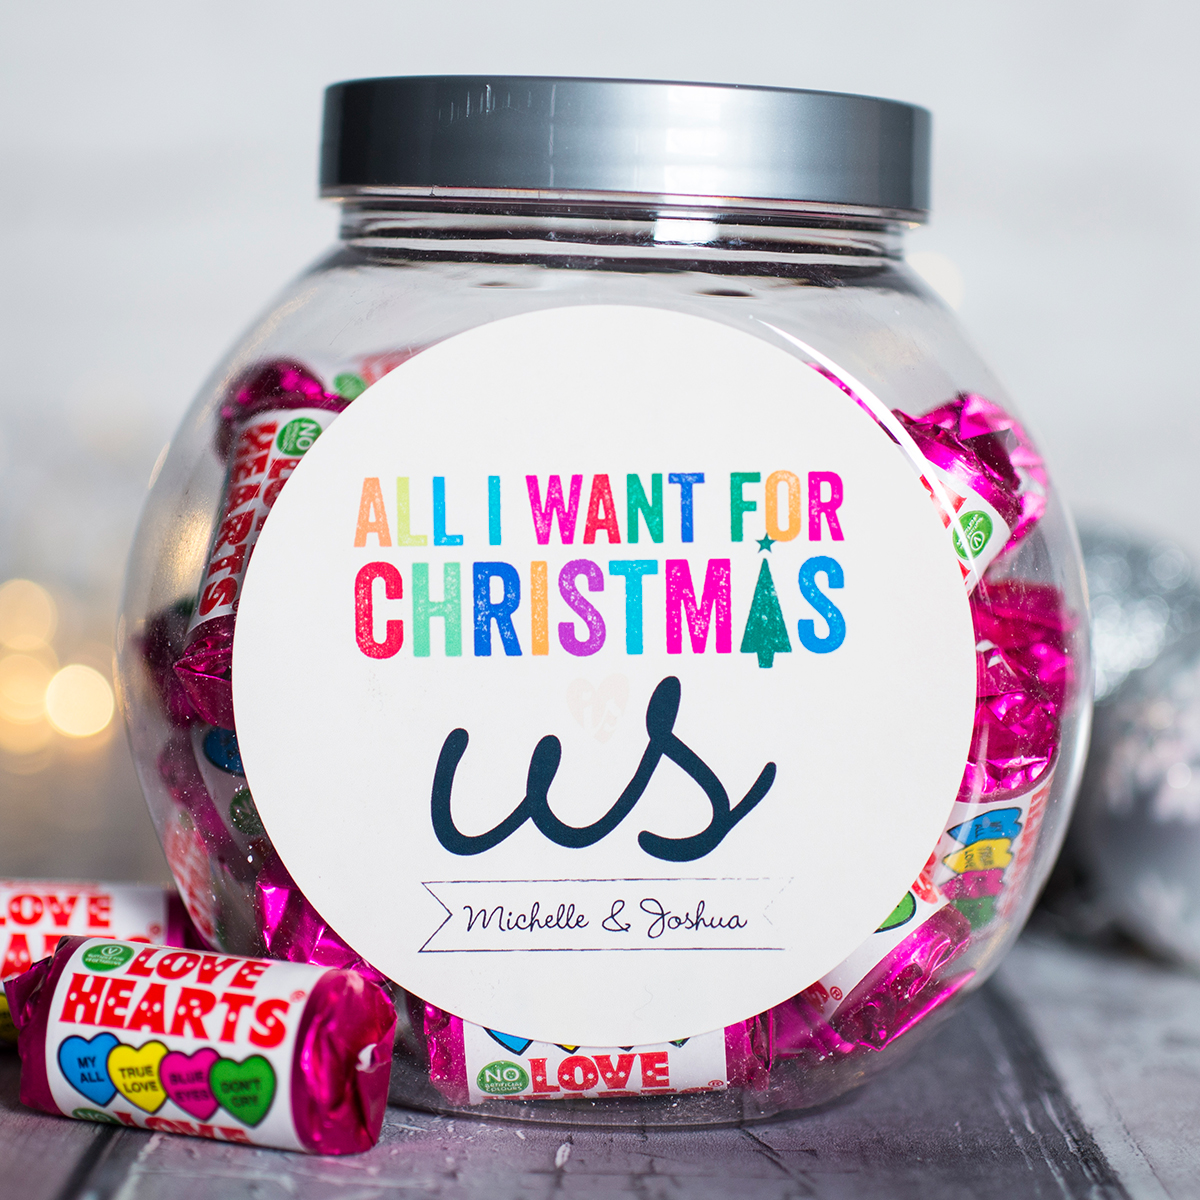 Personalised Love Hearts Jar - All I Want